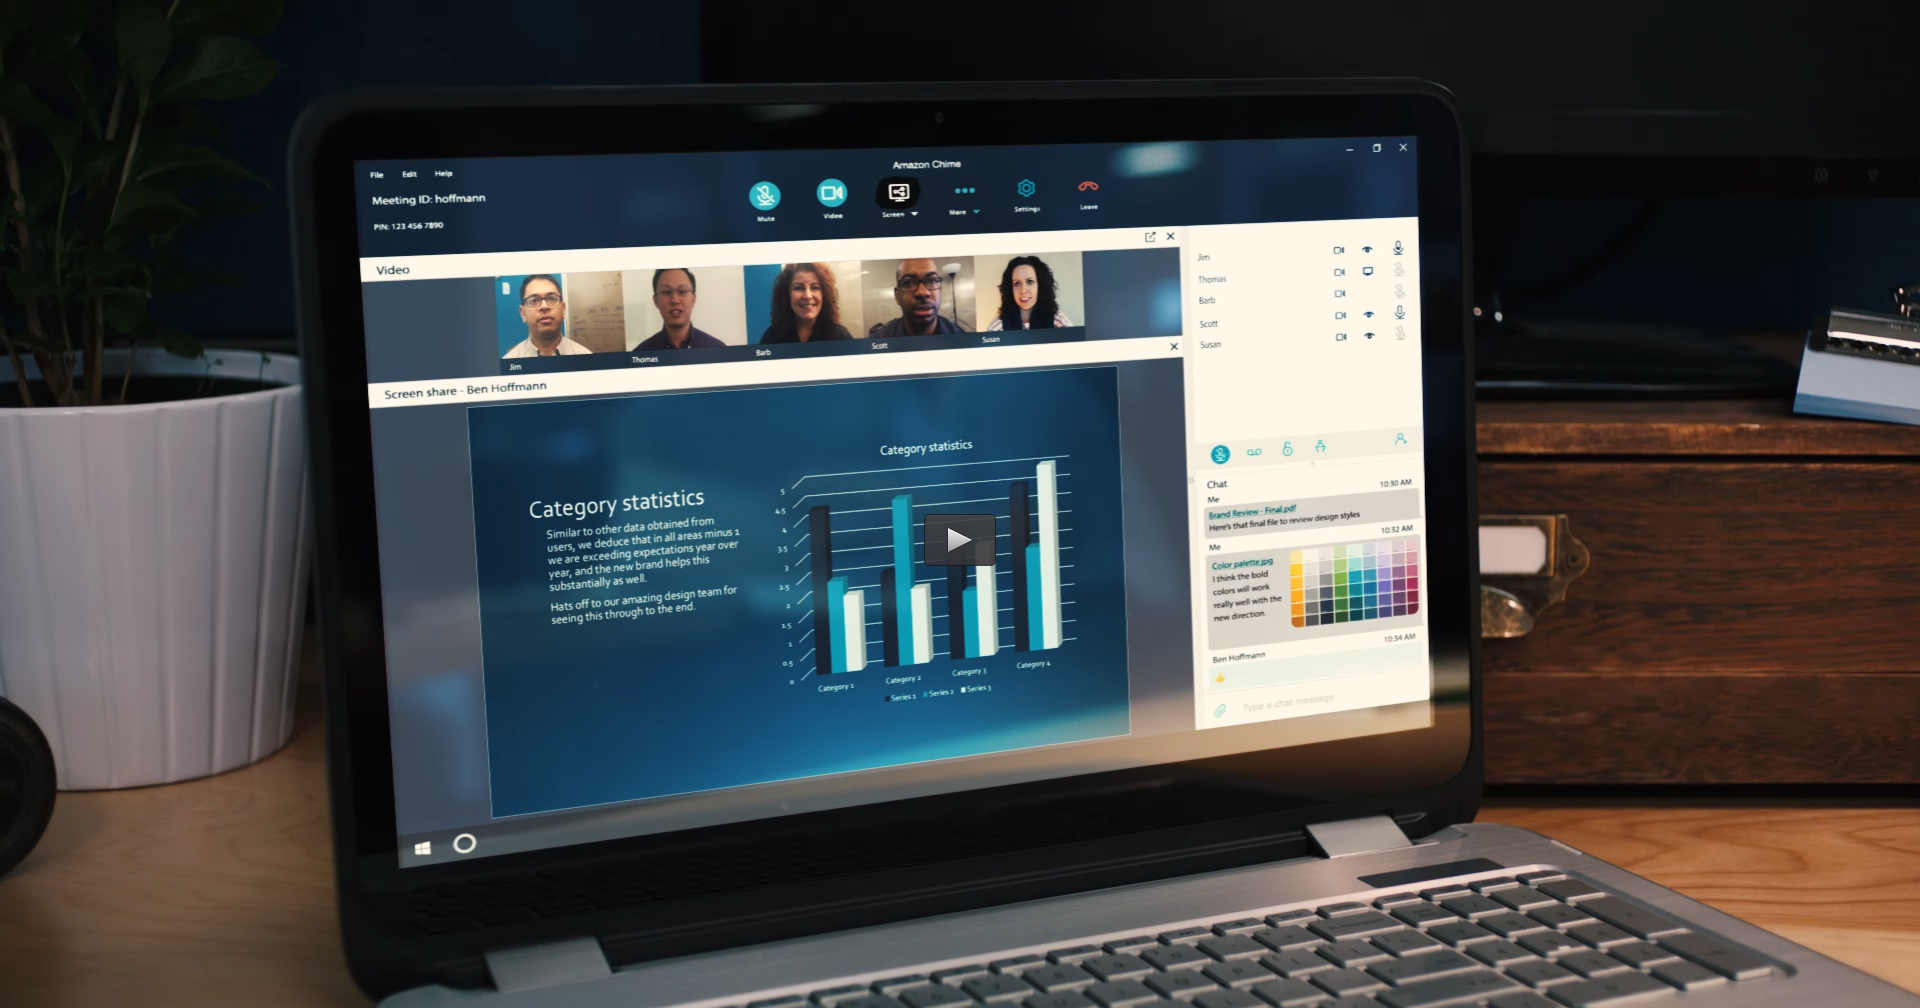 State-of-the-art web conferencing is still a dream